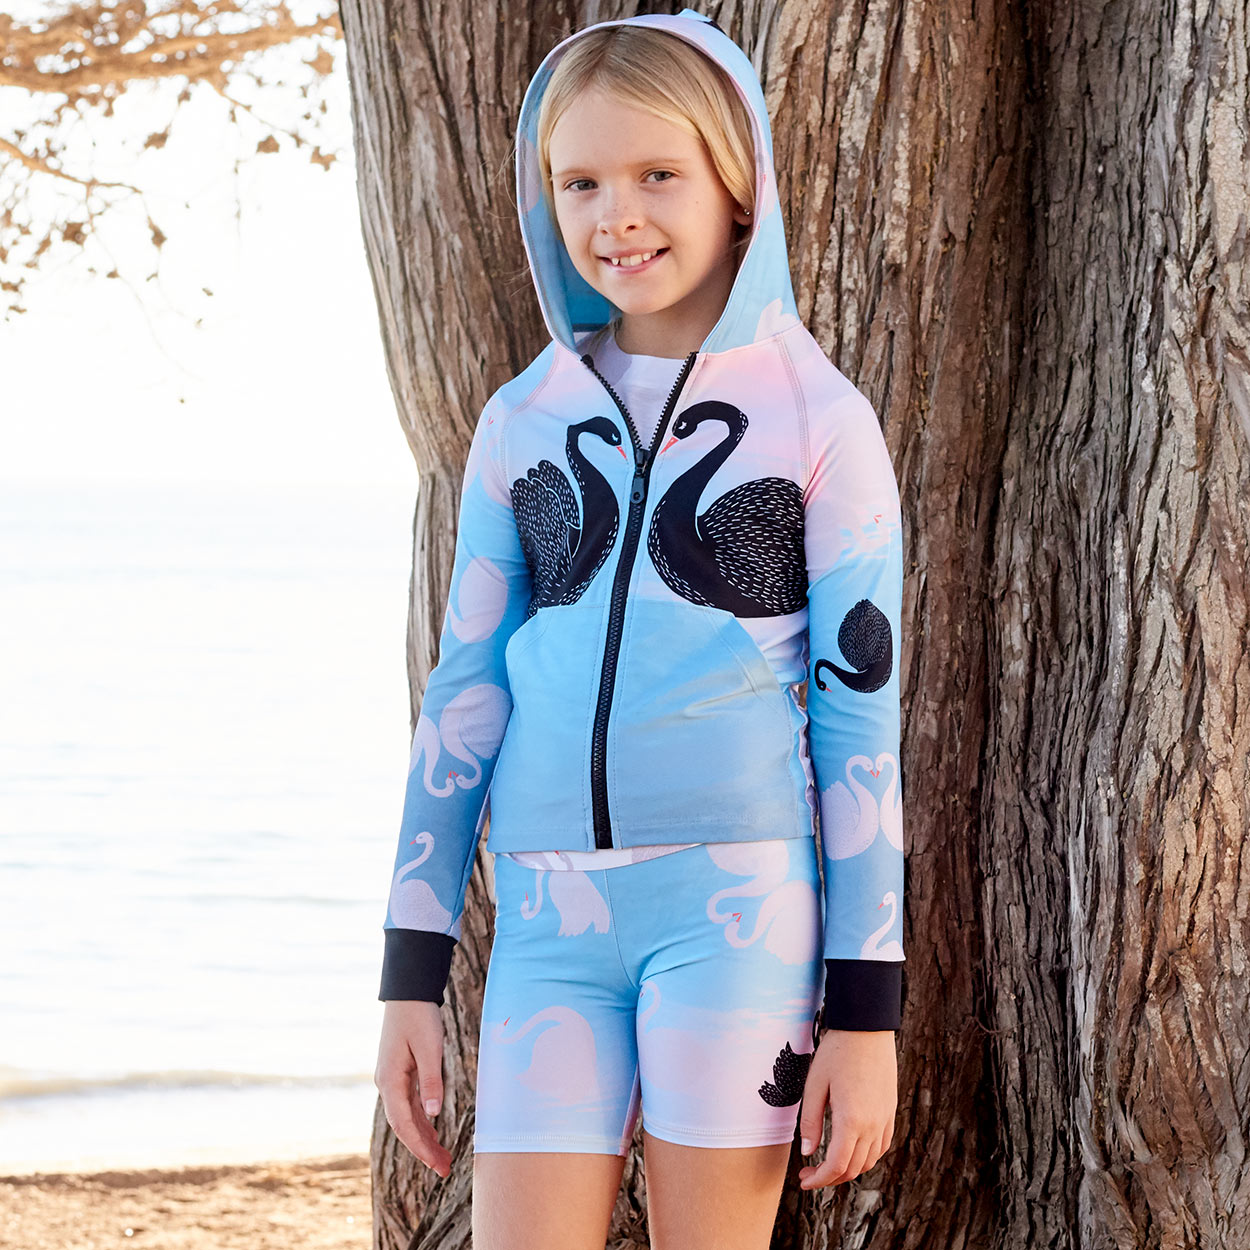 Swan Zip Up Hoodie Upf50 Kids Girls Size 2 12 Aqua Black White Peach Beach Girl Wearing A Hoodie At The Beach Sunpoplife